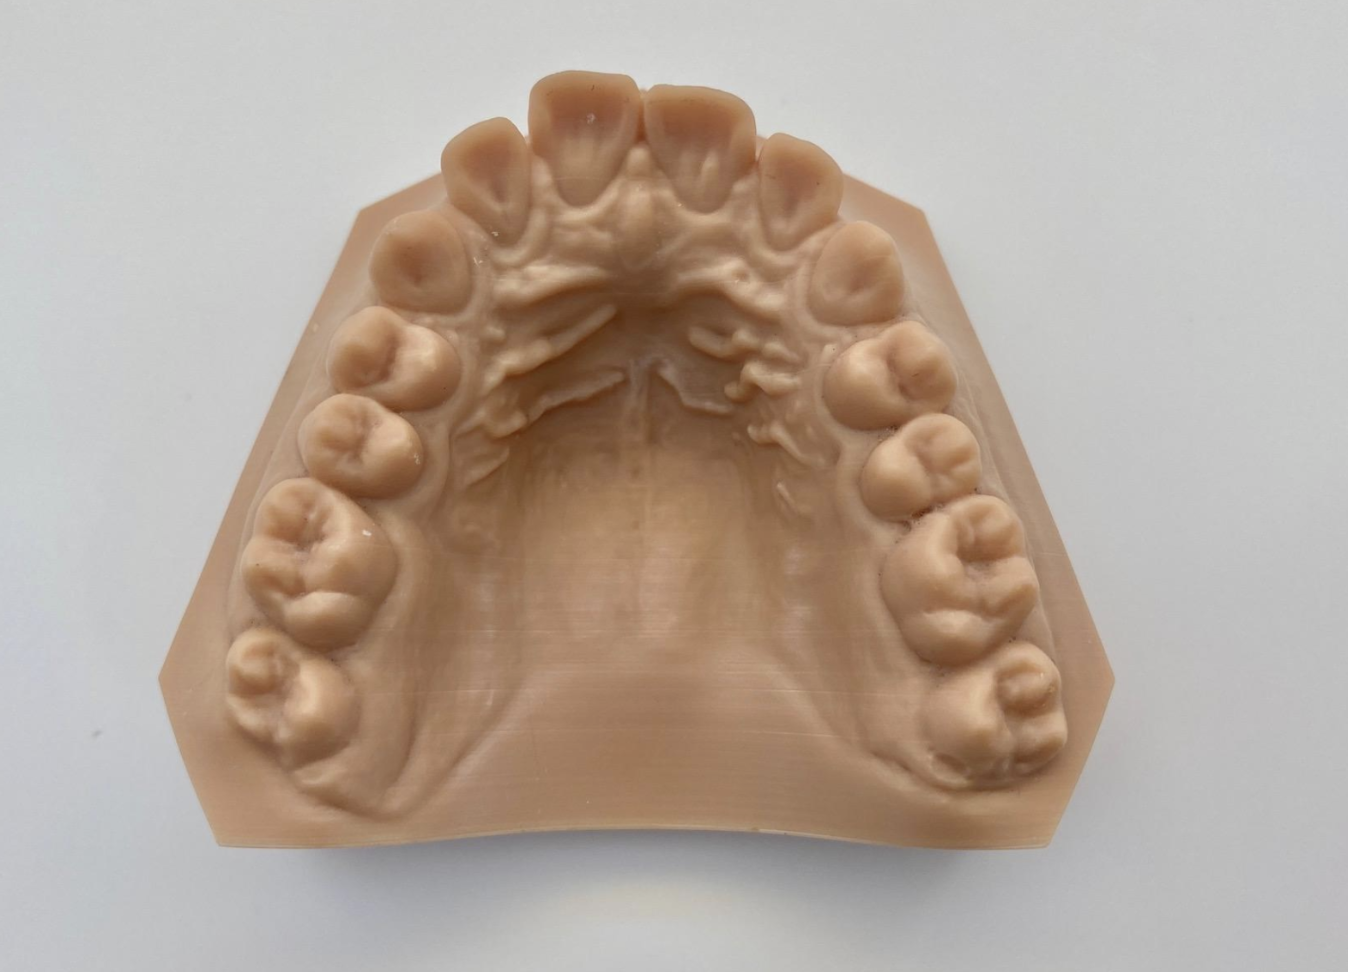 A mold of a mouth generated by 3D printing.